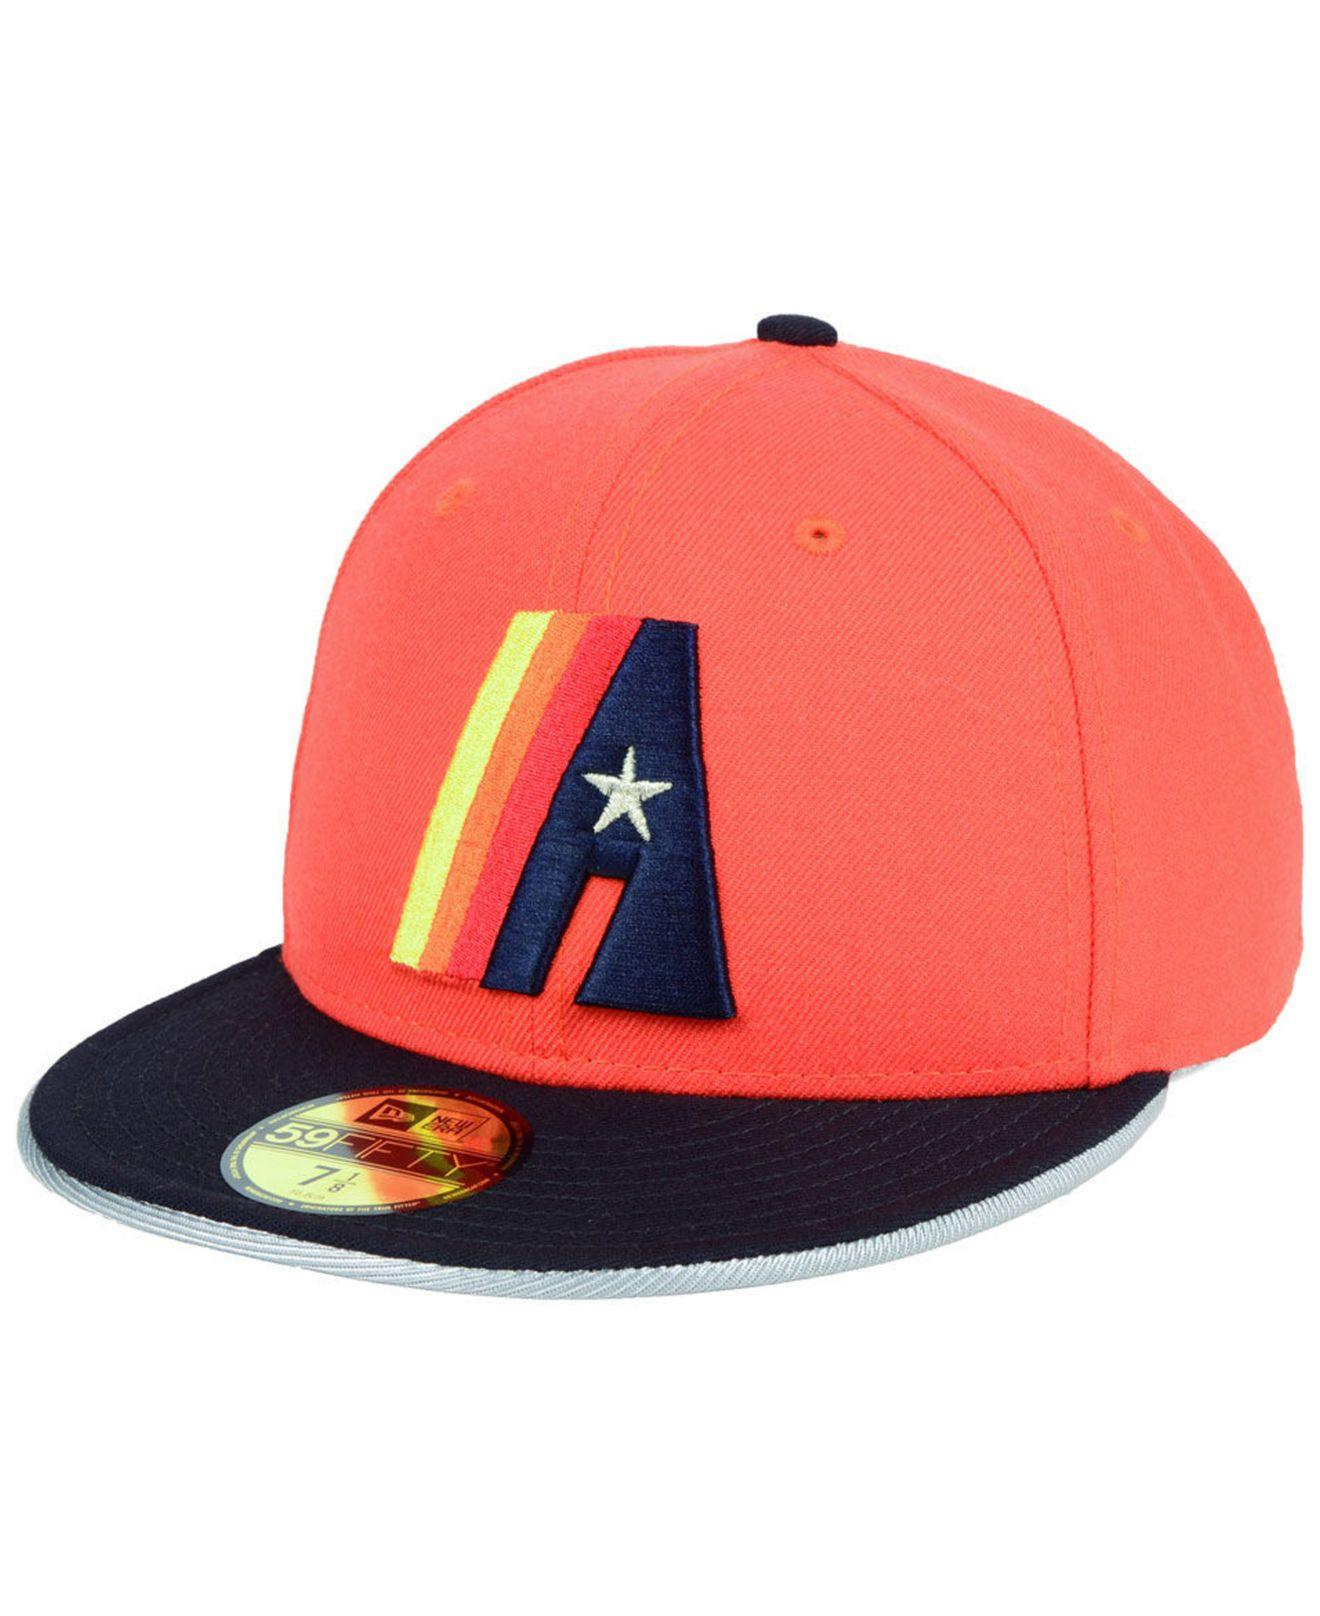 best website e1de2 e21b1 KTZ Houston Astros Turn To The Future 59fifty Fitted Cap for Men - Lyst